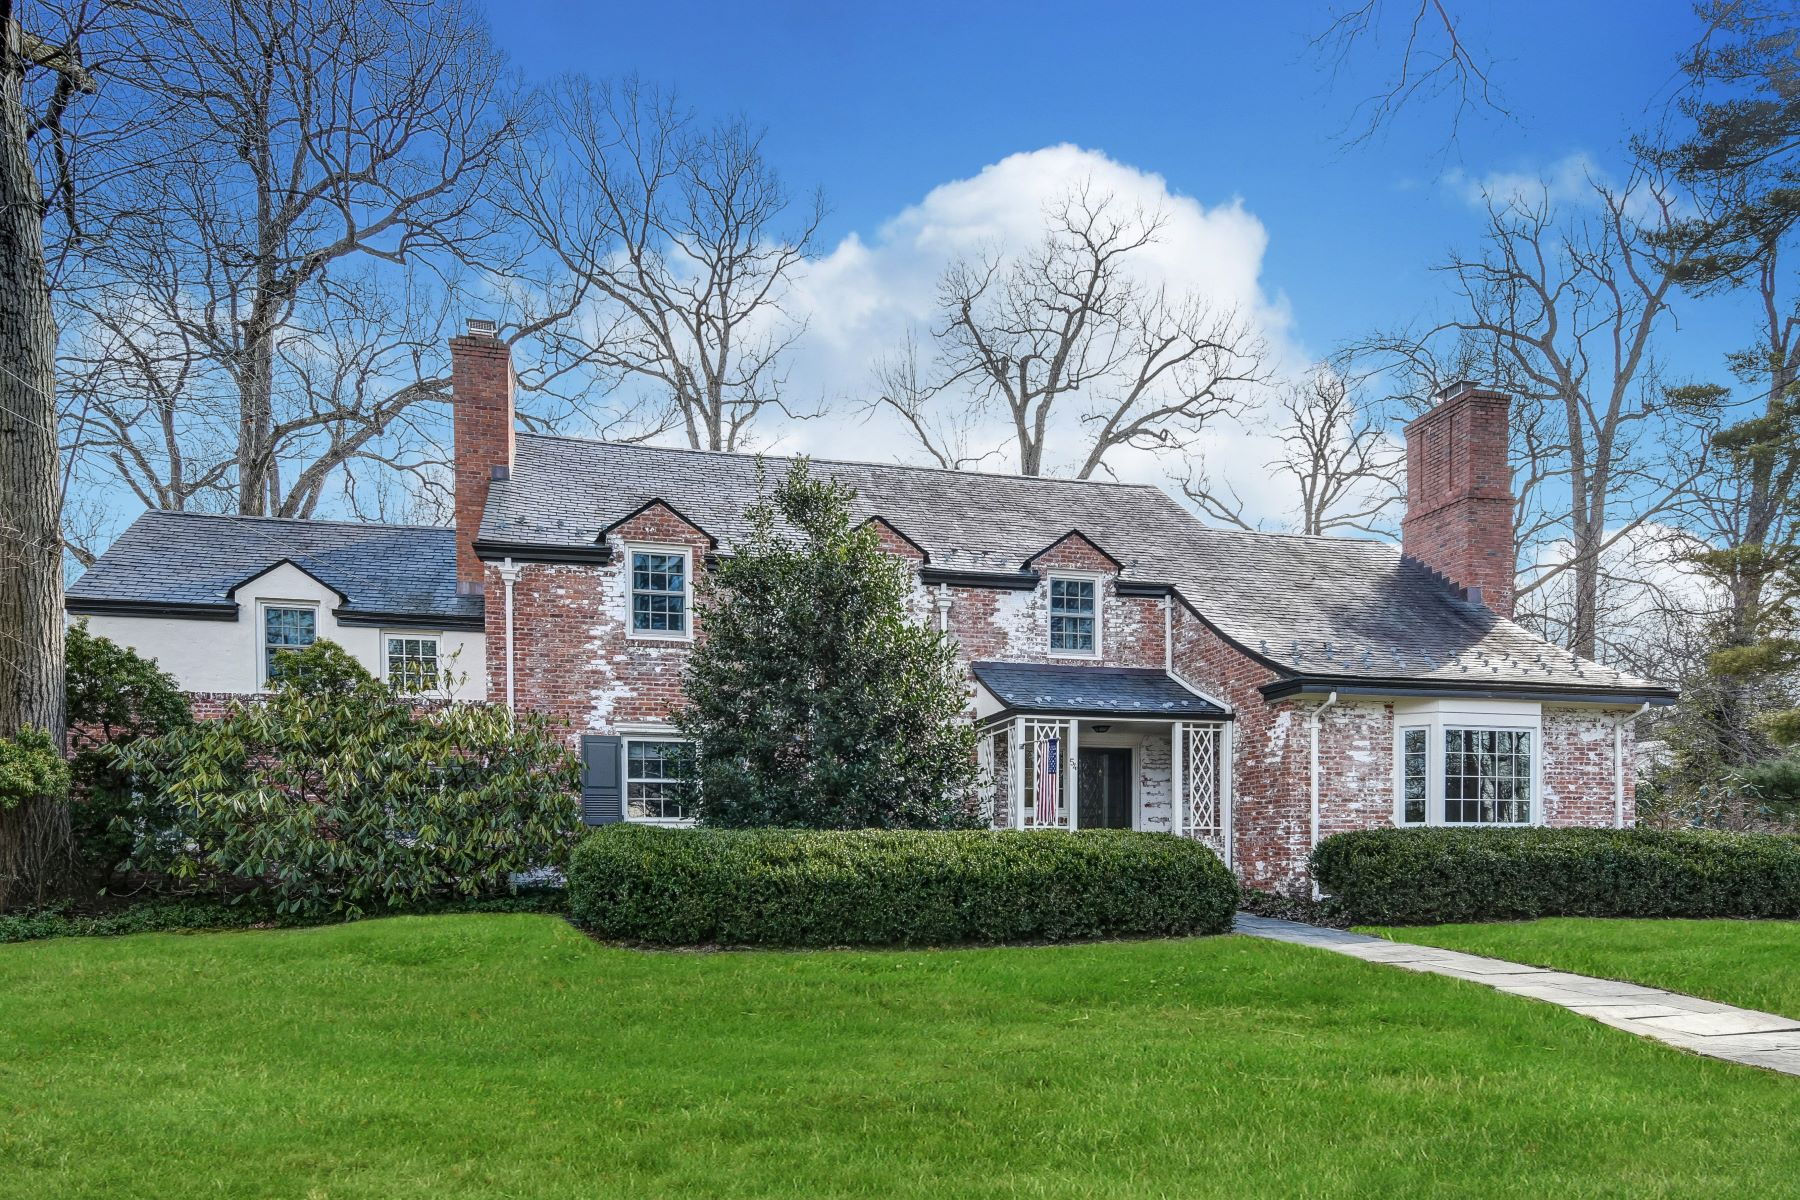 Single Family Homes for Sale at Grand English Colonial 54 Colt Road Summit, New Jersey 07901 United States